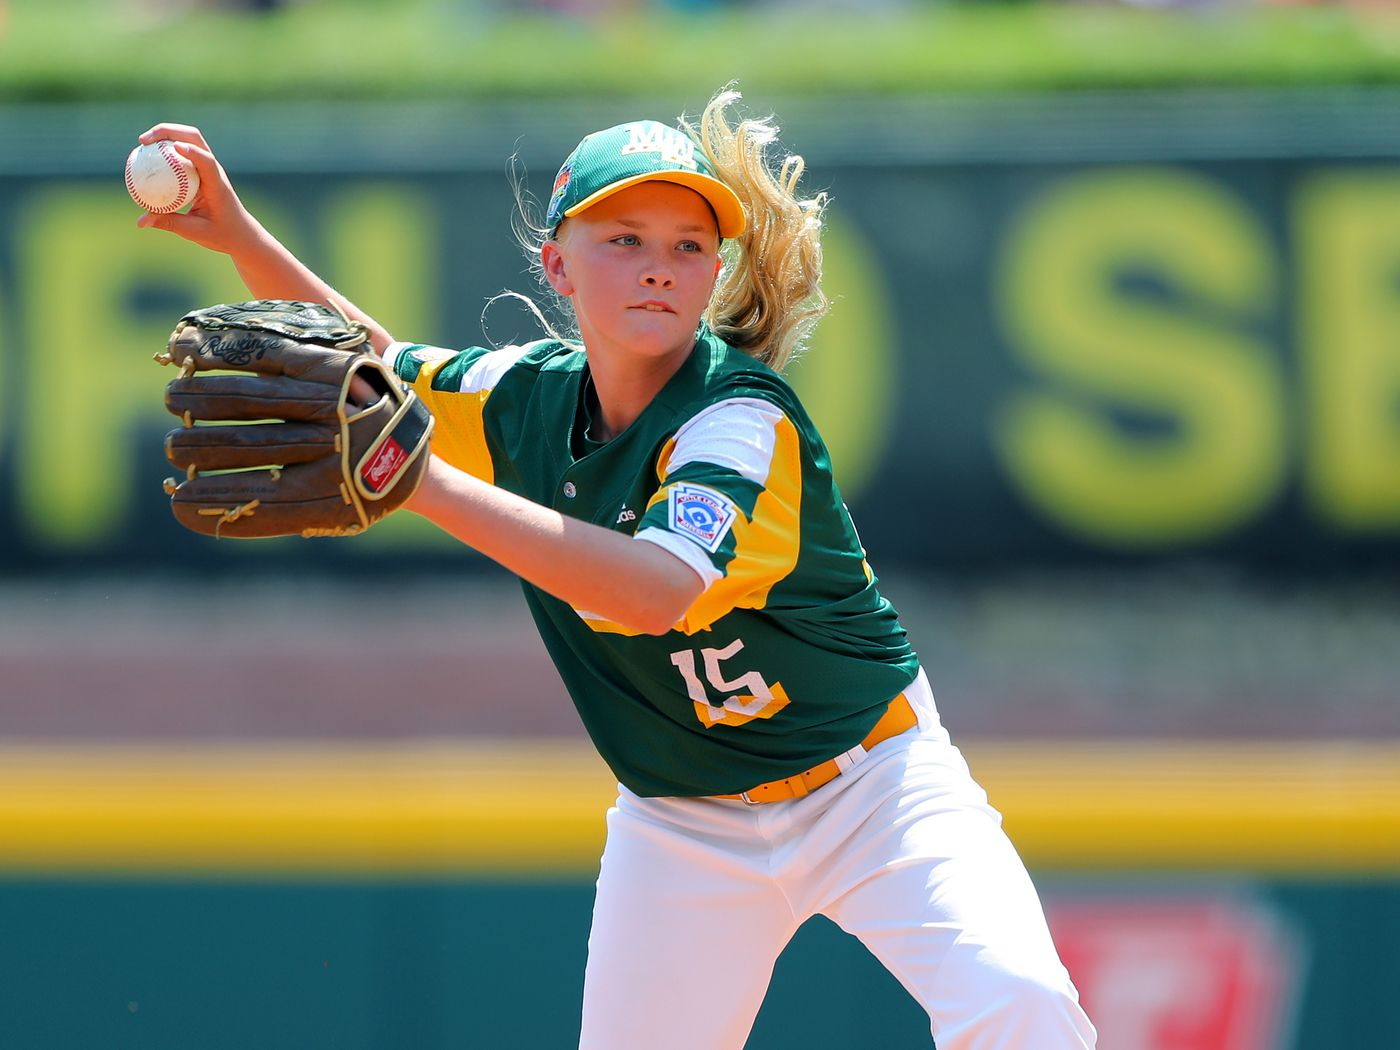 2020 Little League Bat List.Maddy Freking And The History Of Girls At Little League